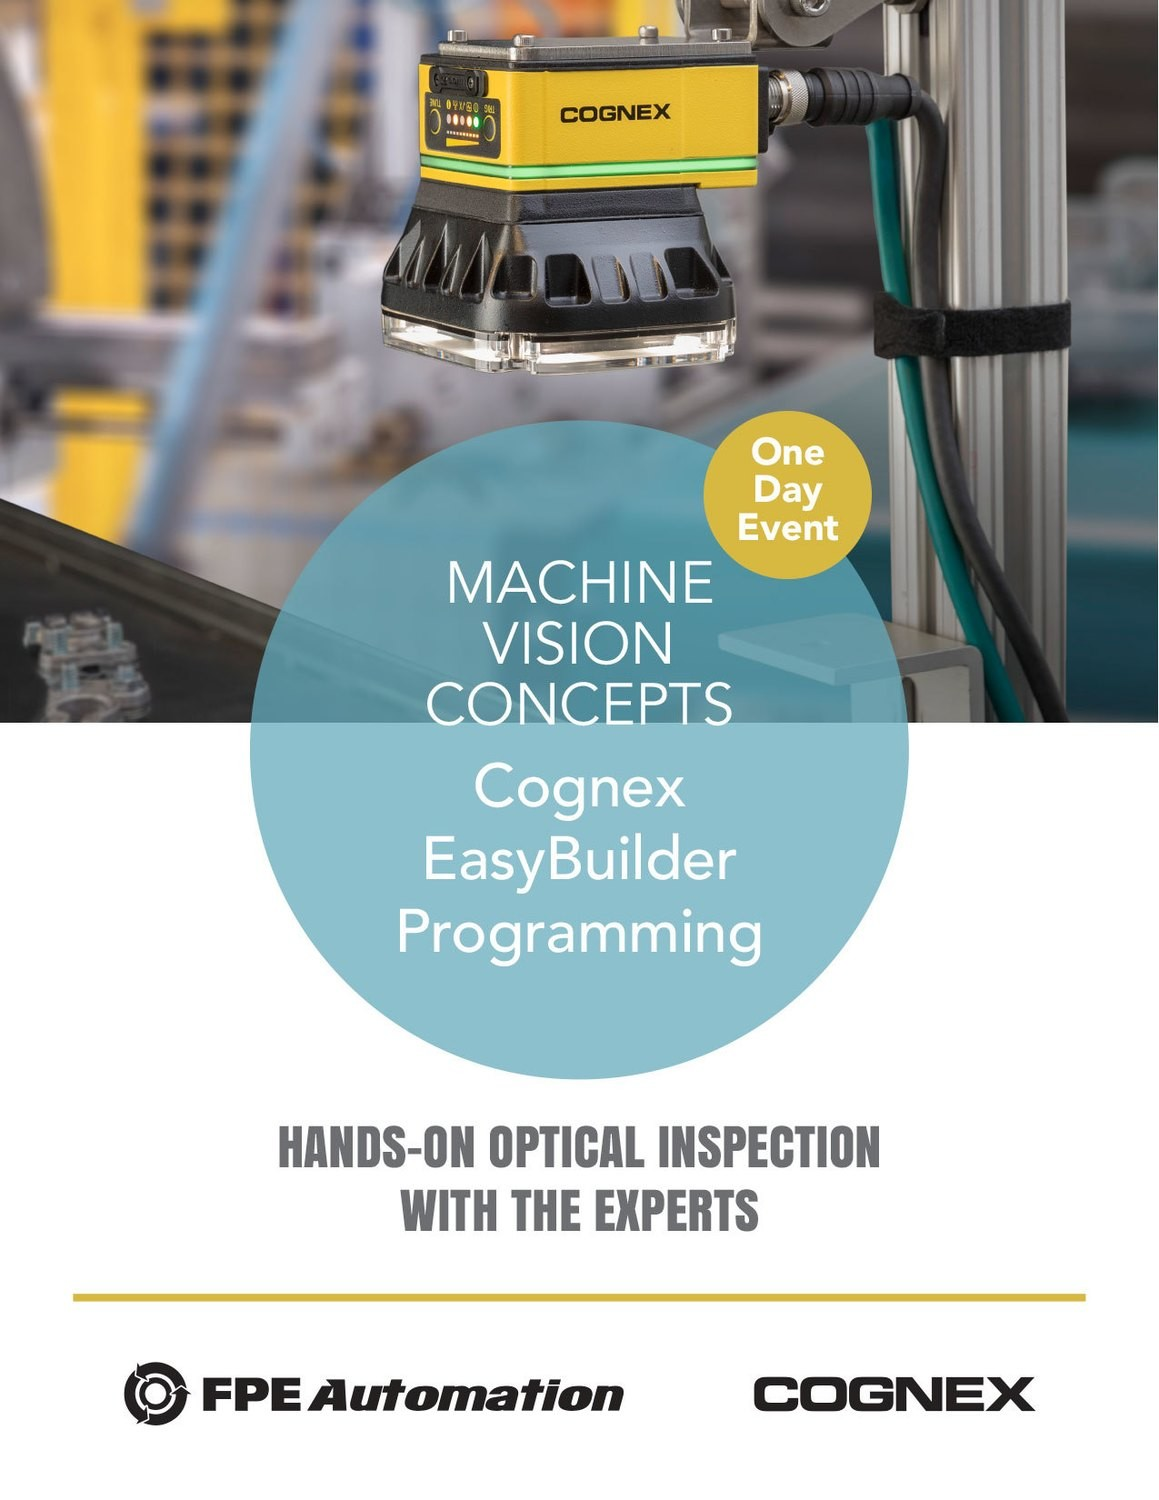 One Day Event: Machine Vision Concepts and Cognex EasyBuilder Programming